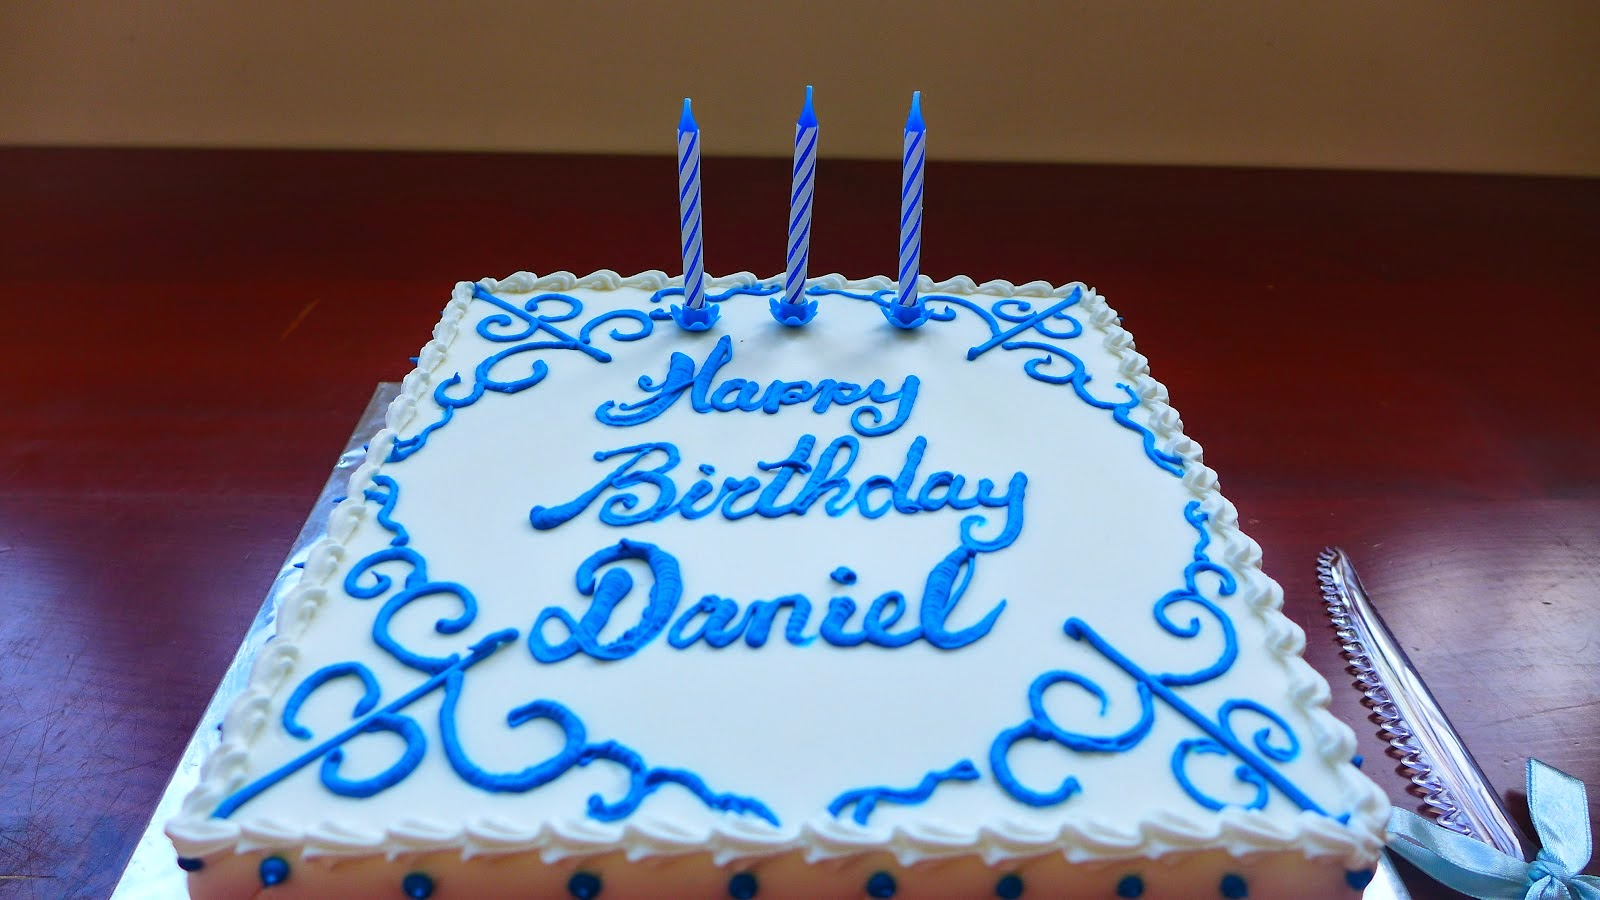 What I Learned from Daniel : The Blog: Happy Eighteenth ...